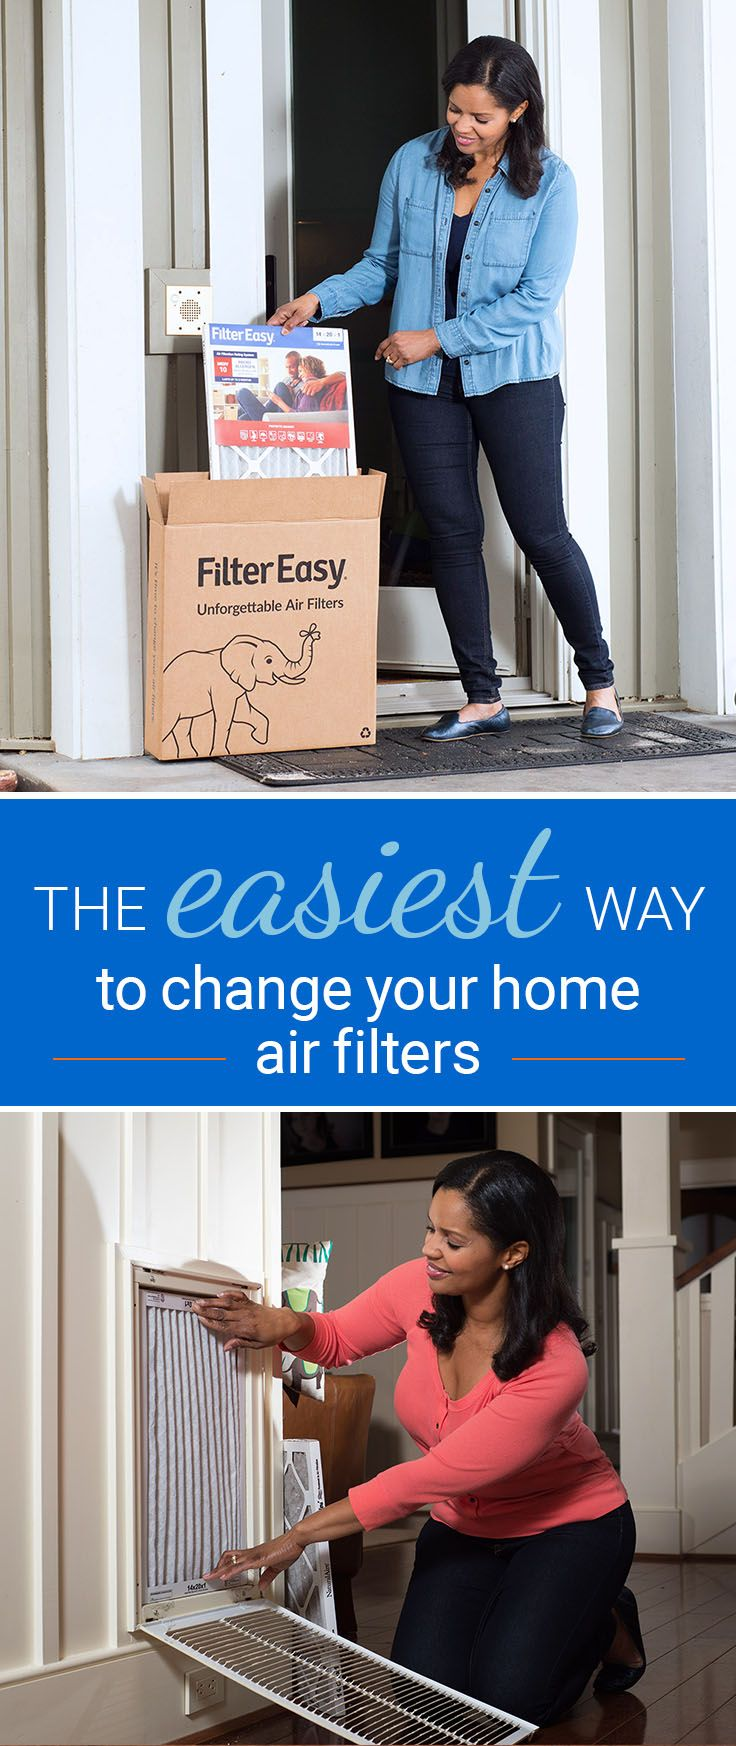 Meet FilterEasy—Air Filters Delivered When it's Time to Change Them